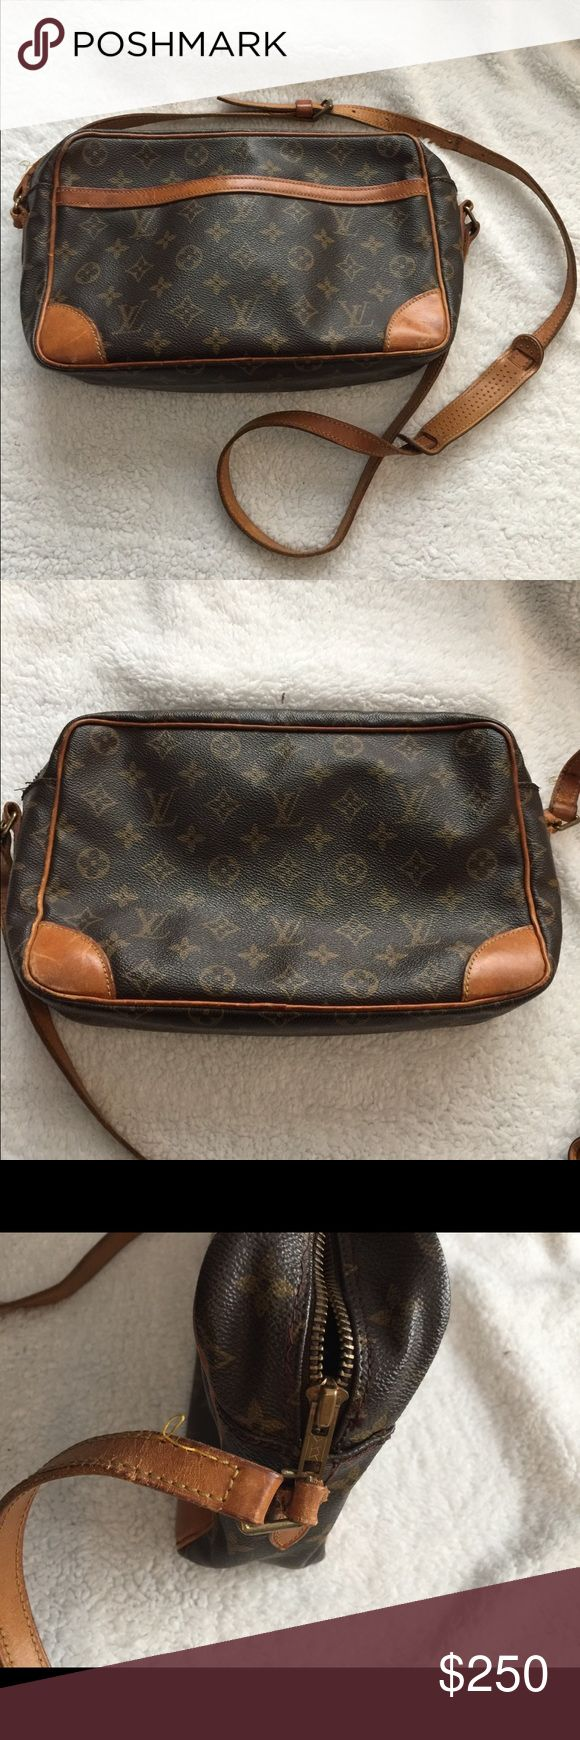 Original Louis Vuitton Trocadero Cross Body Purse Original REAL Louis Vuitton from Paris.  Please see pictures for condition, outside canvas is in good condition as are corners and hardware is working. Inside has dirt, scratches, stains and pen marks. Louis Vuitton Bags Crossbody Bags